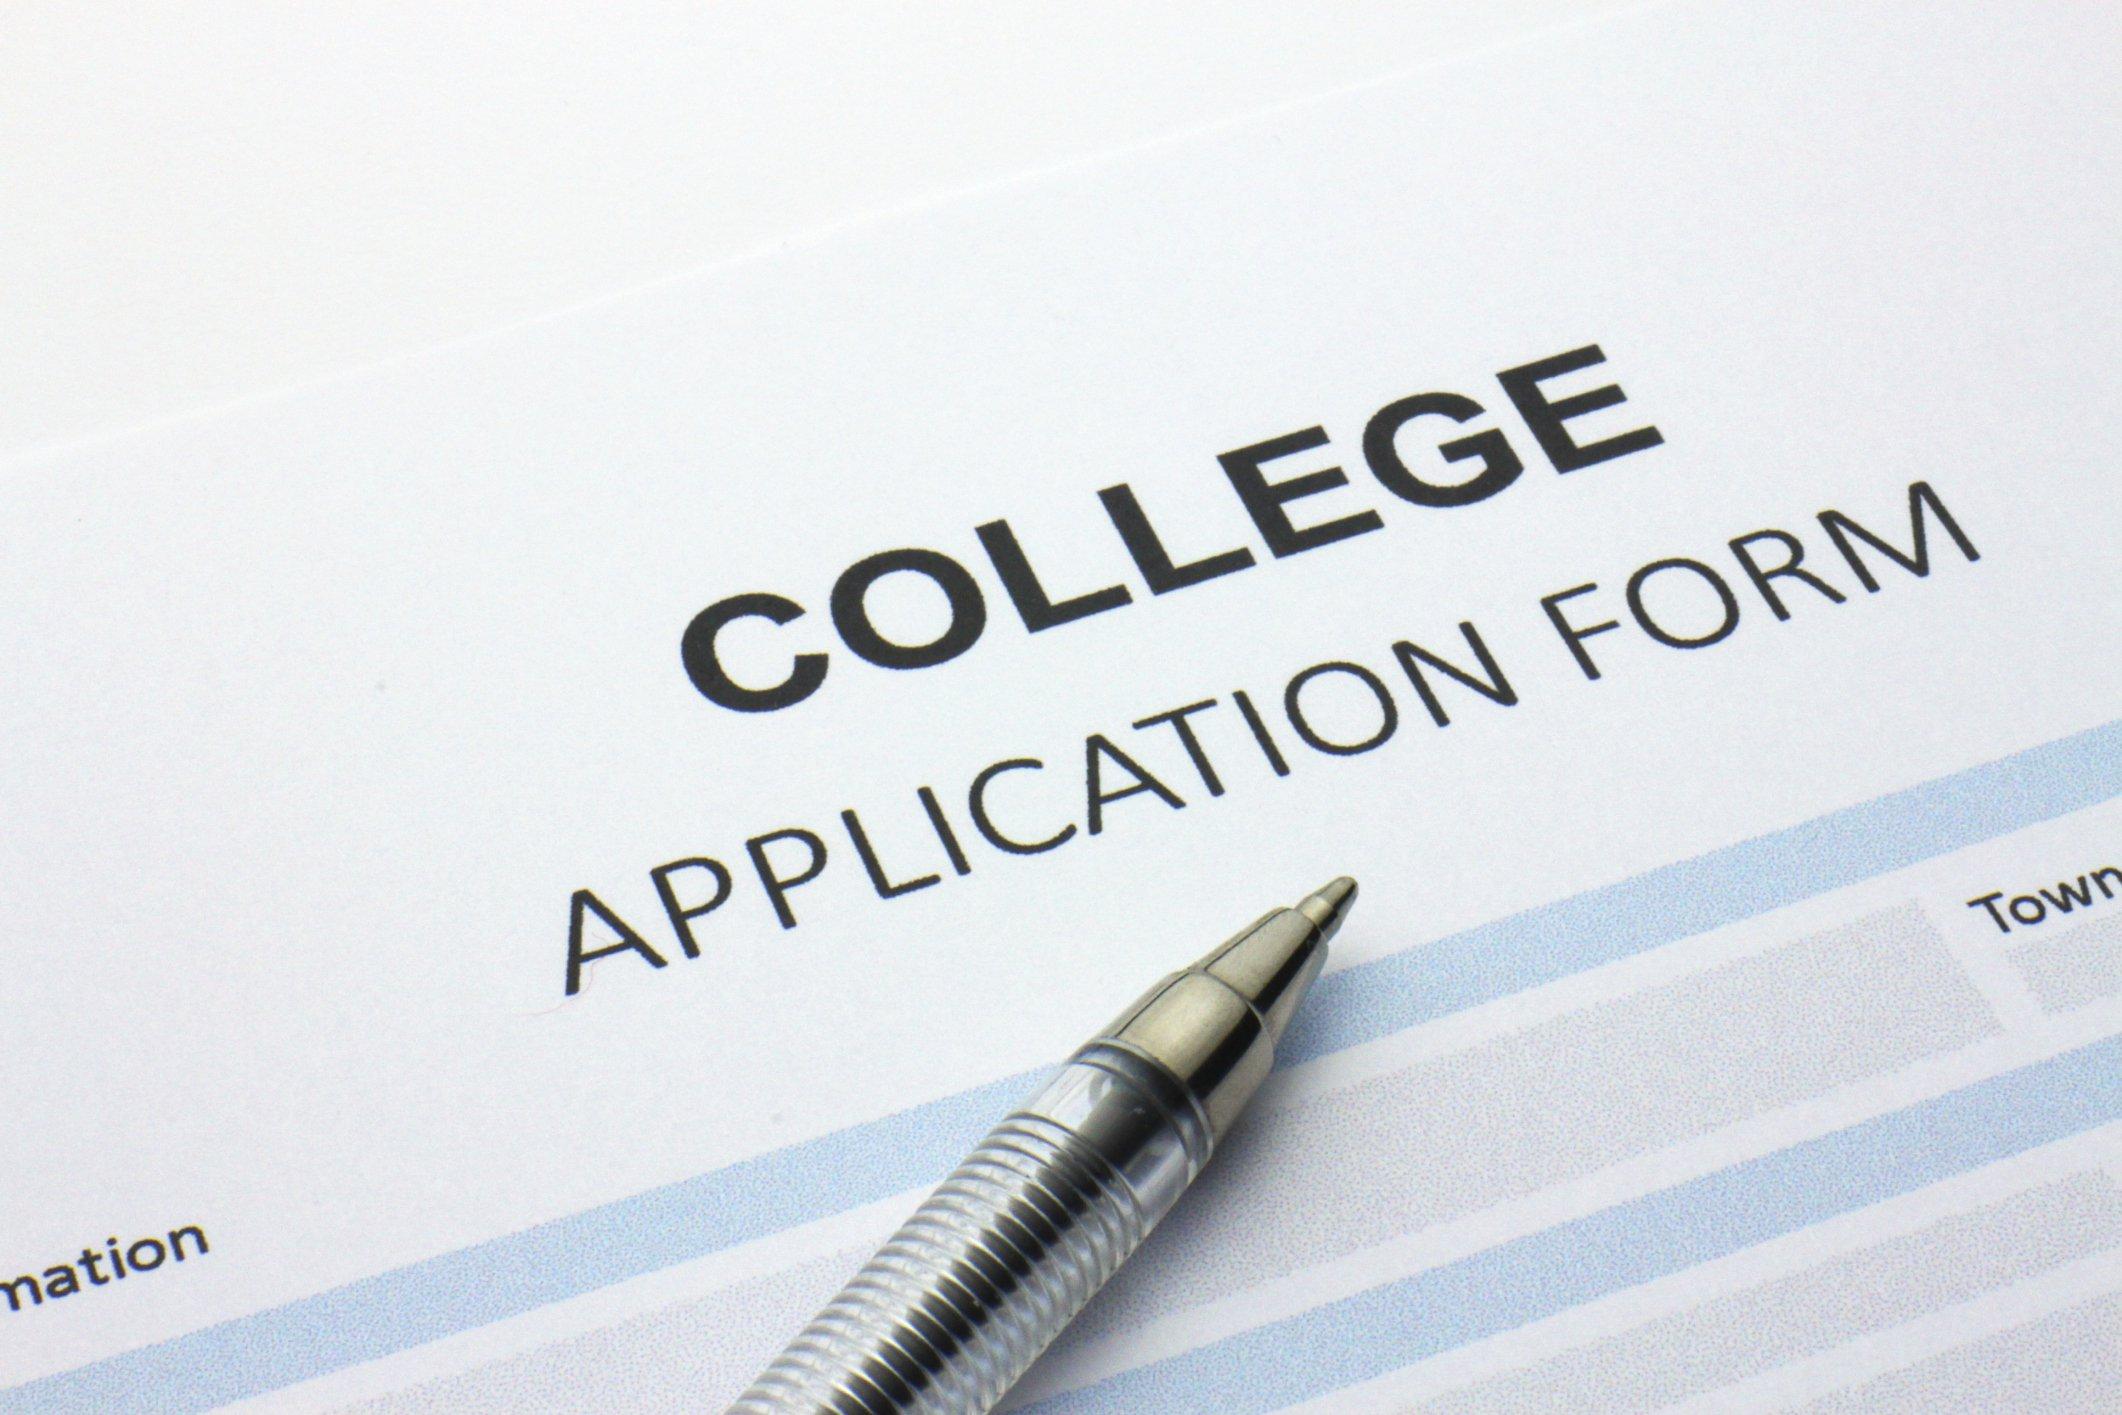 A question about college application?